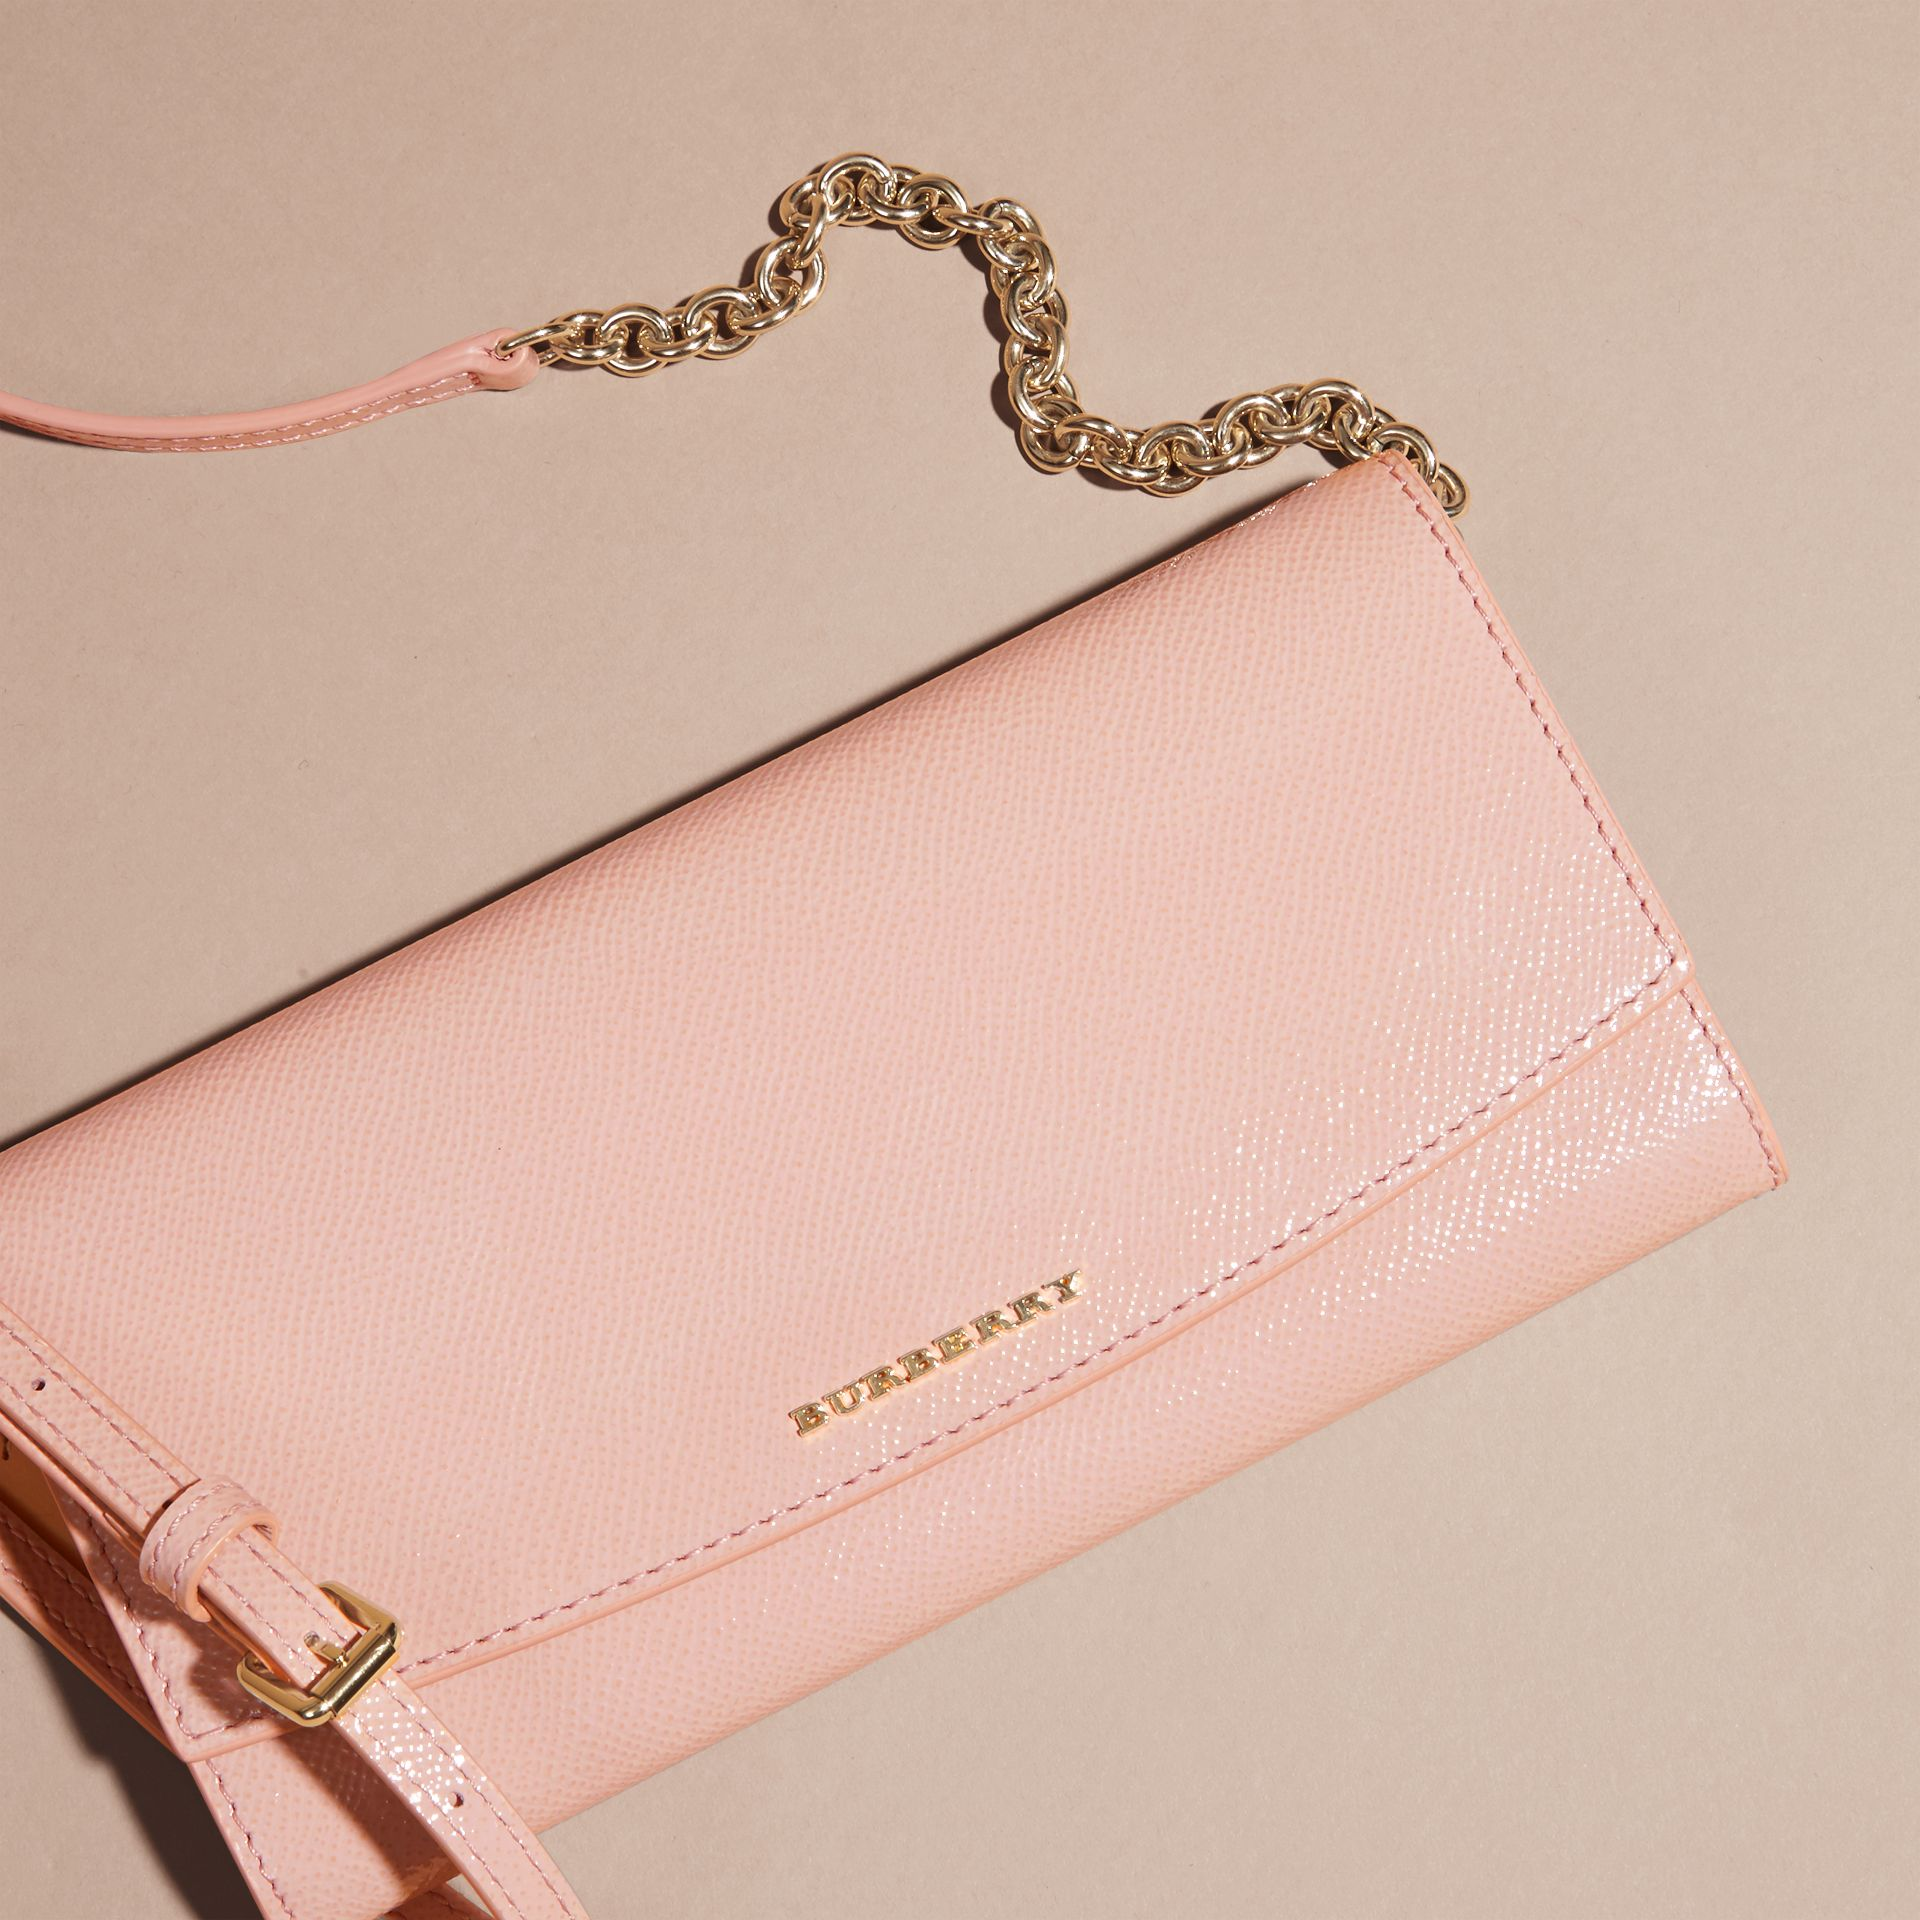 Ash rose Leather Wallet with Chain Ash Rose - gallery image 3